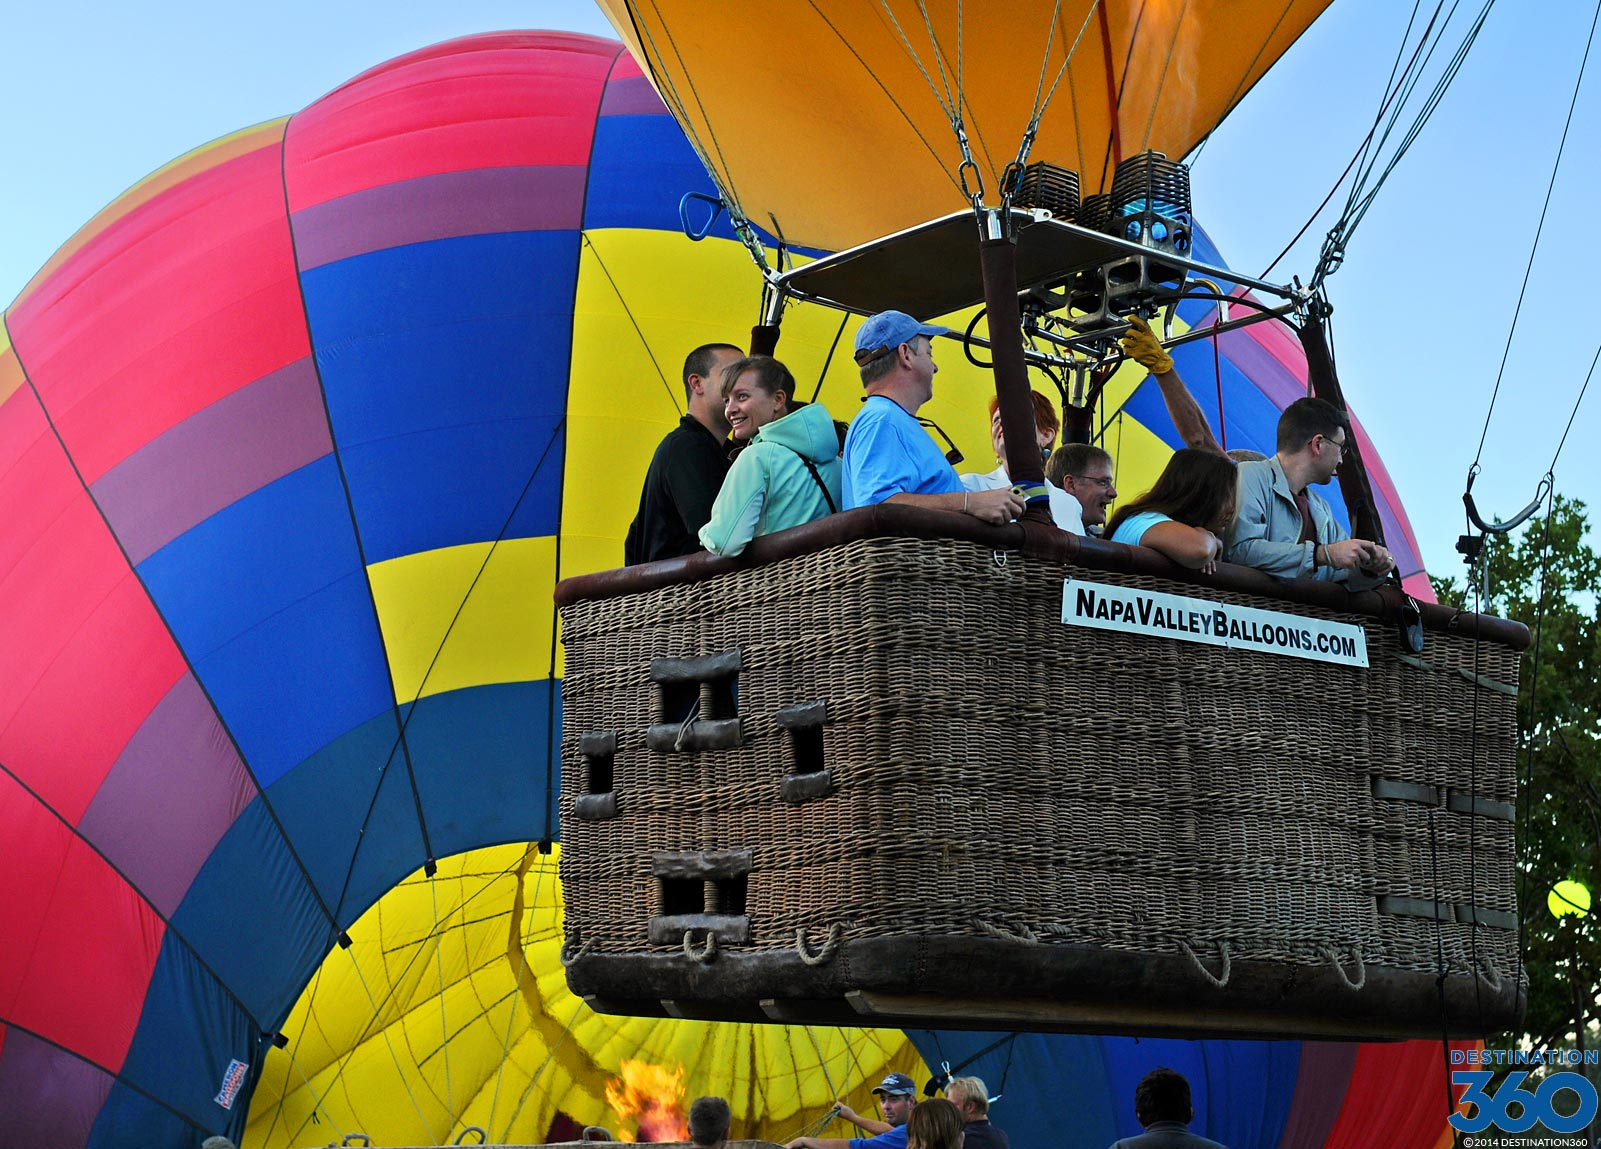 Balloon Rides Virtual Tour